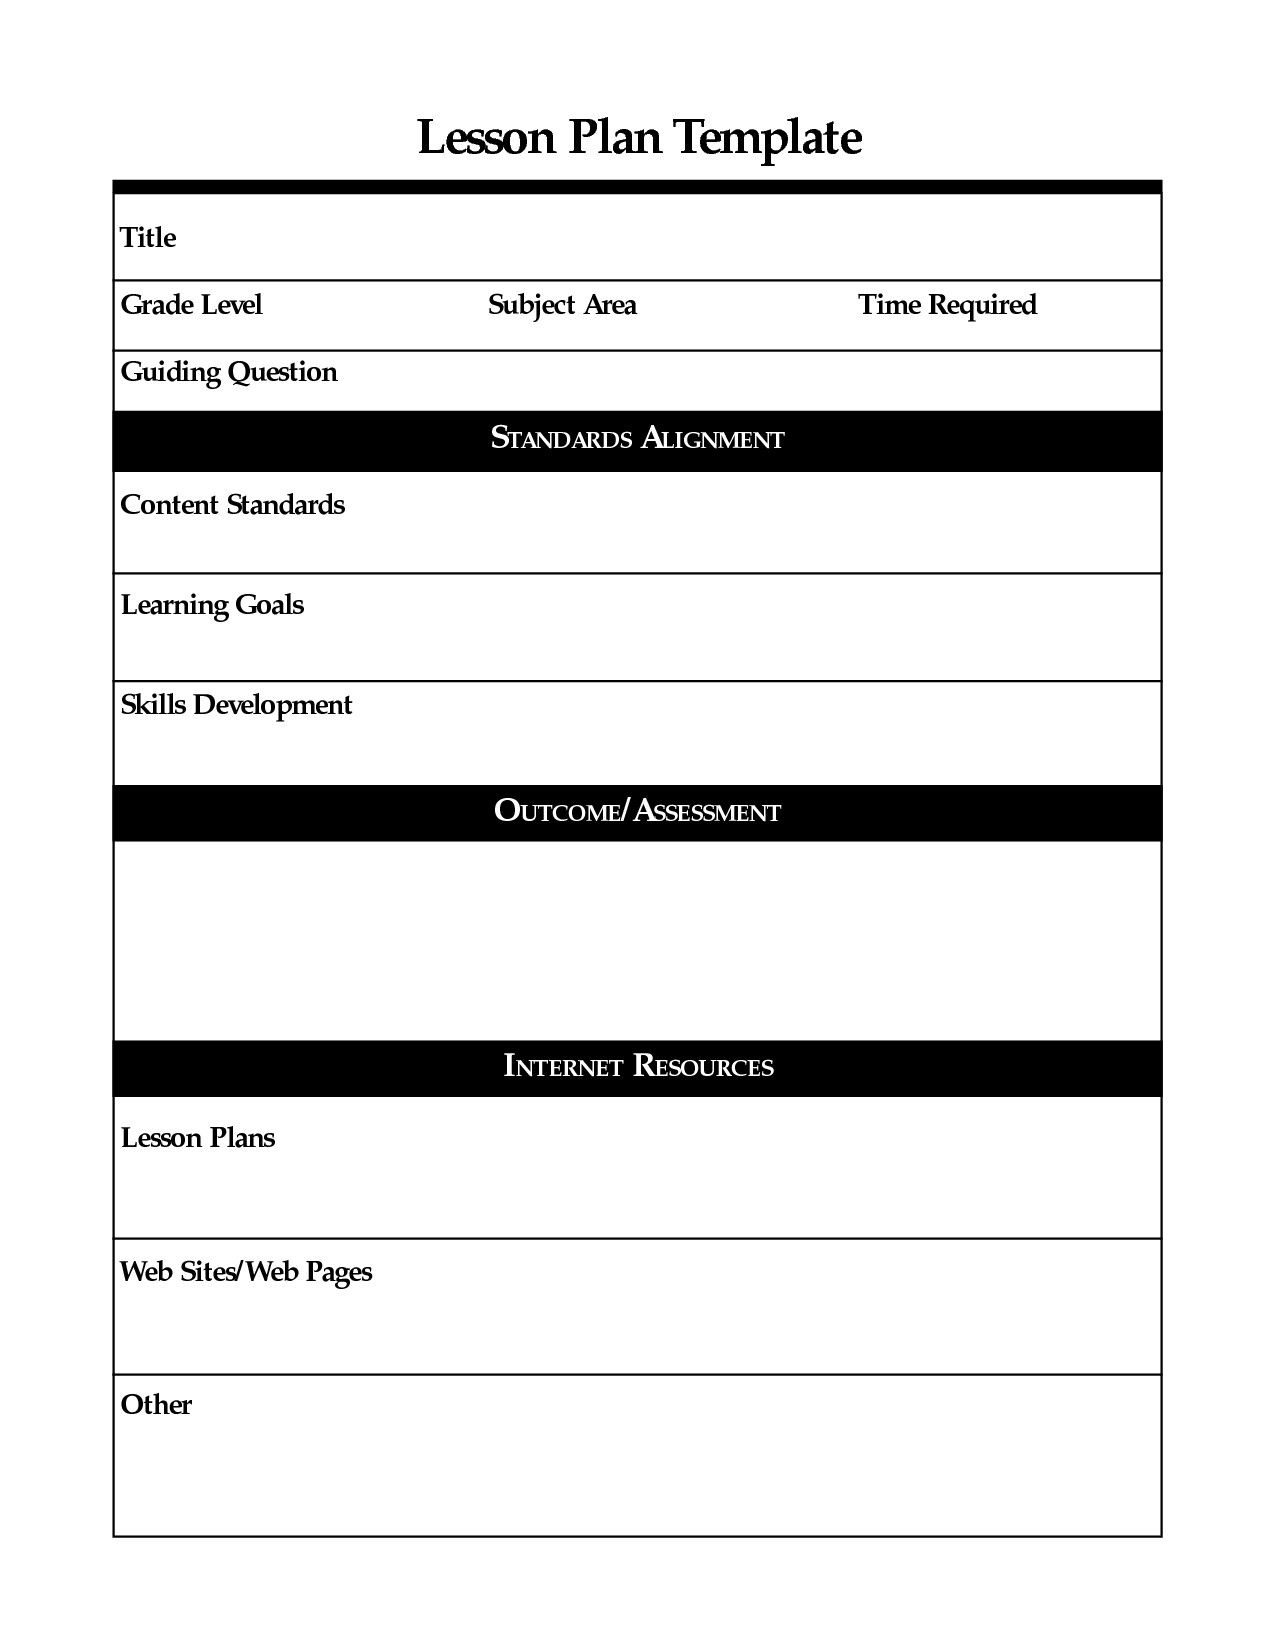 037 Madeline Hunter Lesson Plan Template Free Downloadable With